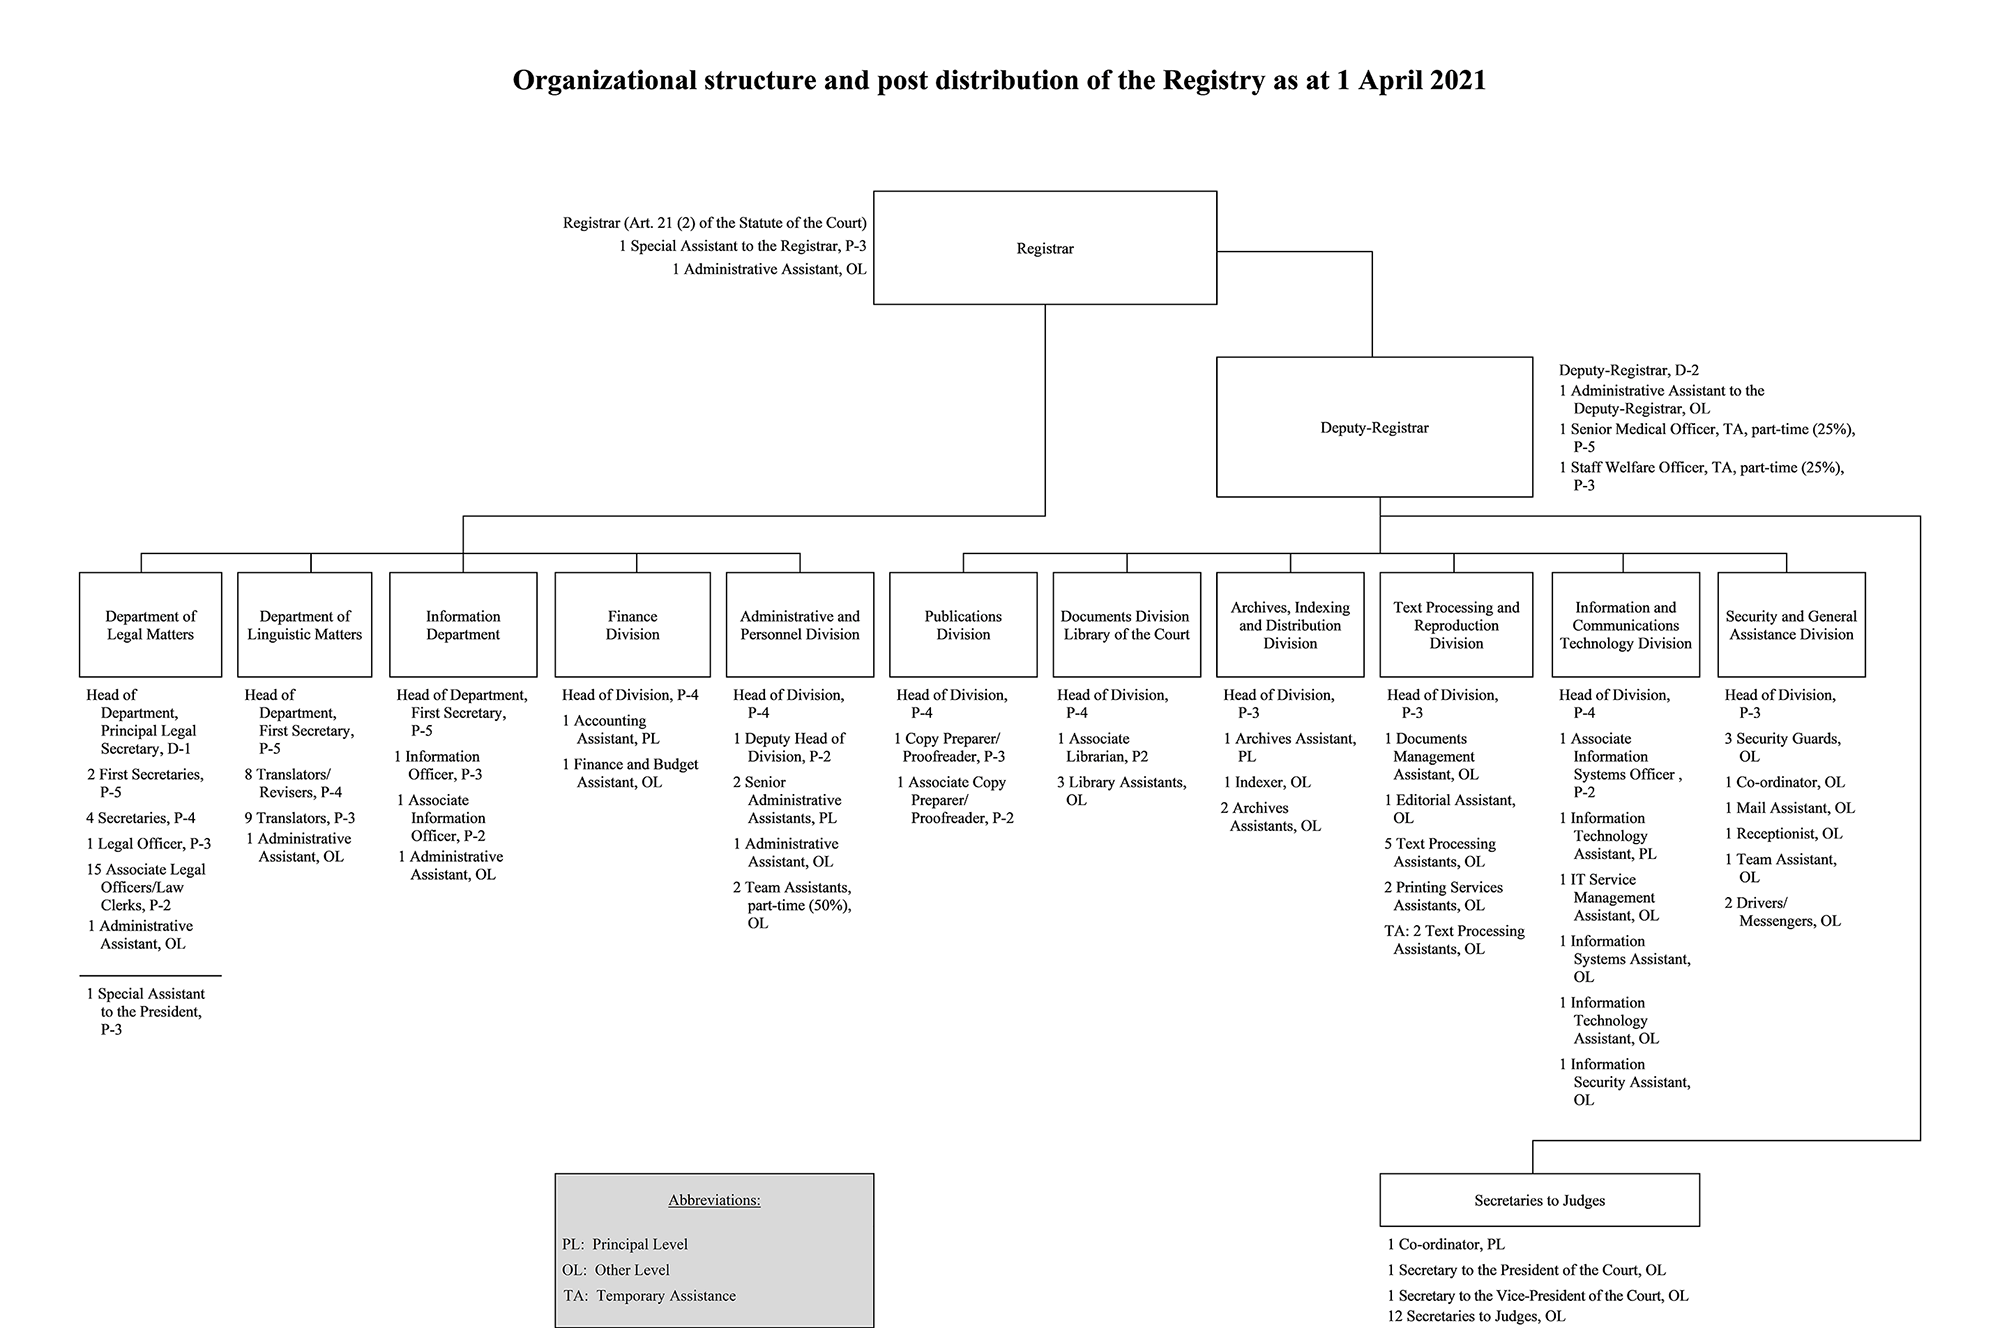 Organizational structure and post distribution of the Registry as at 31 July 2020